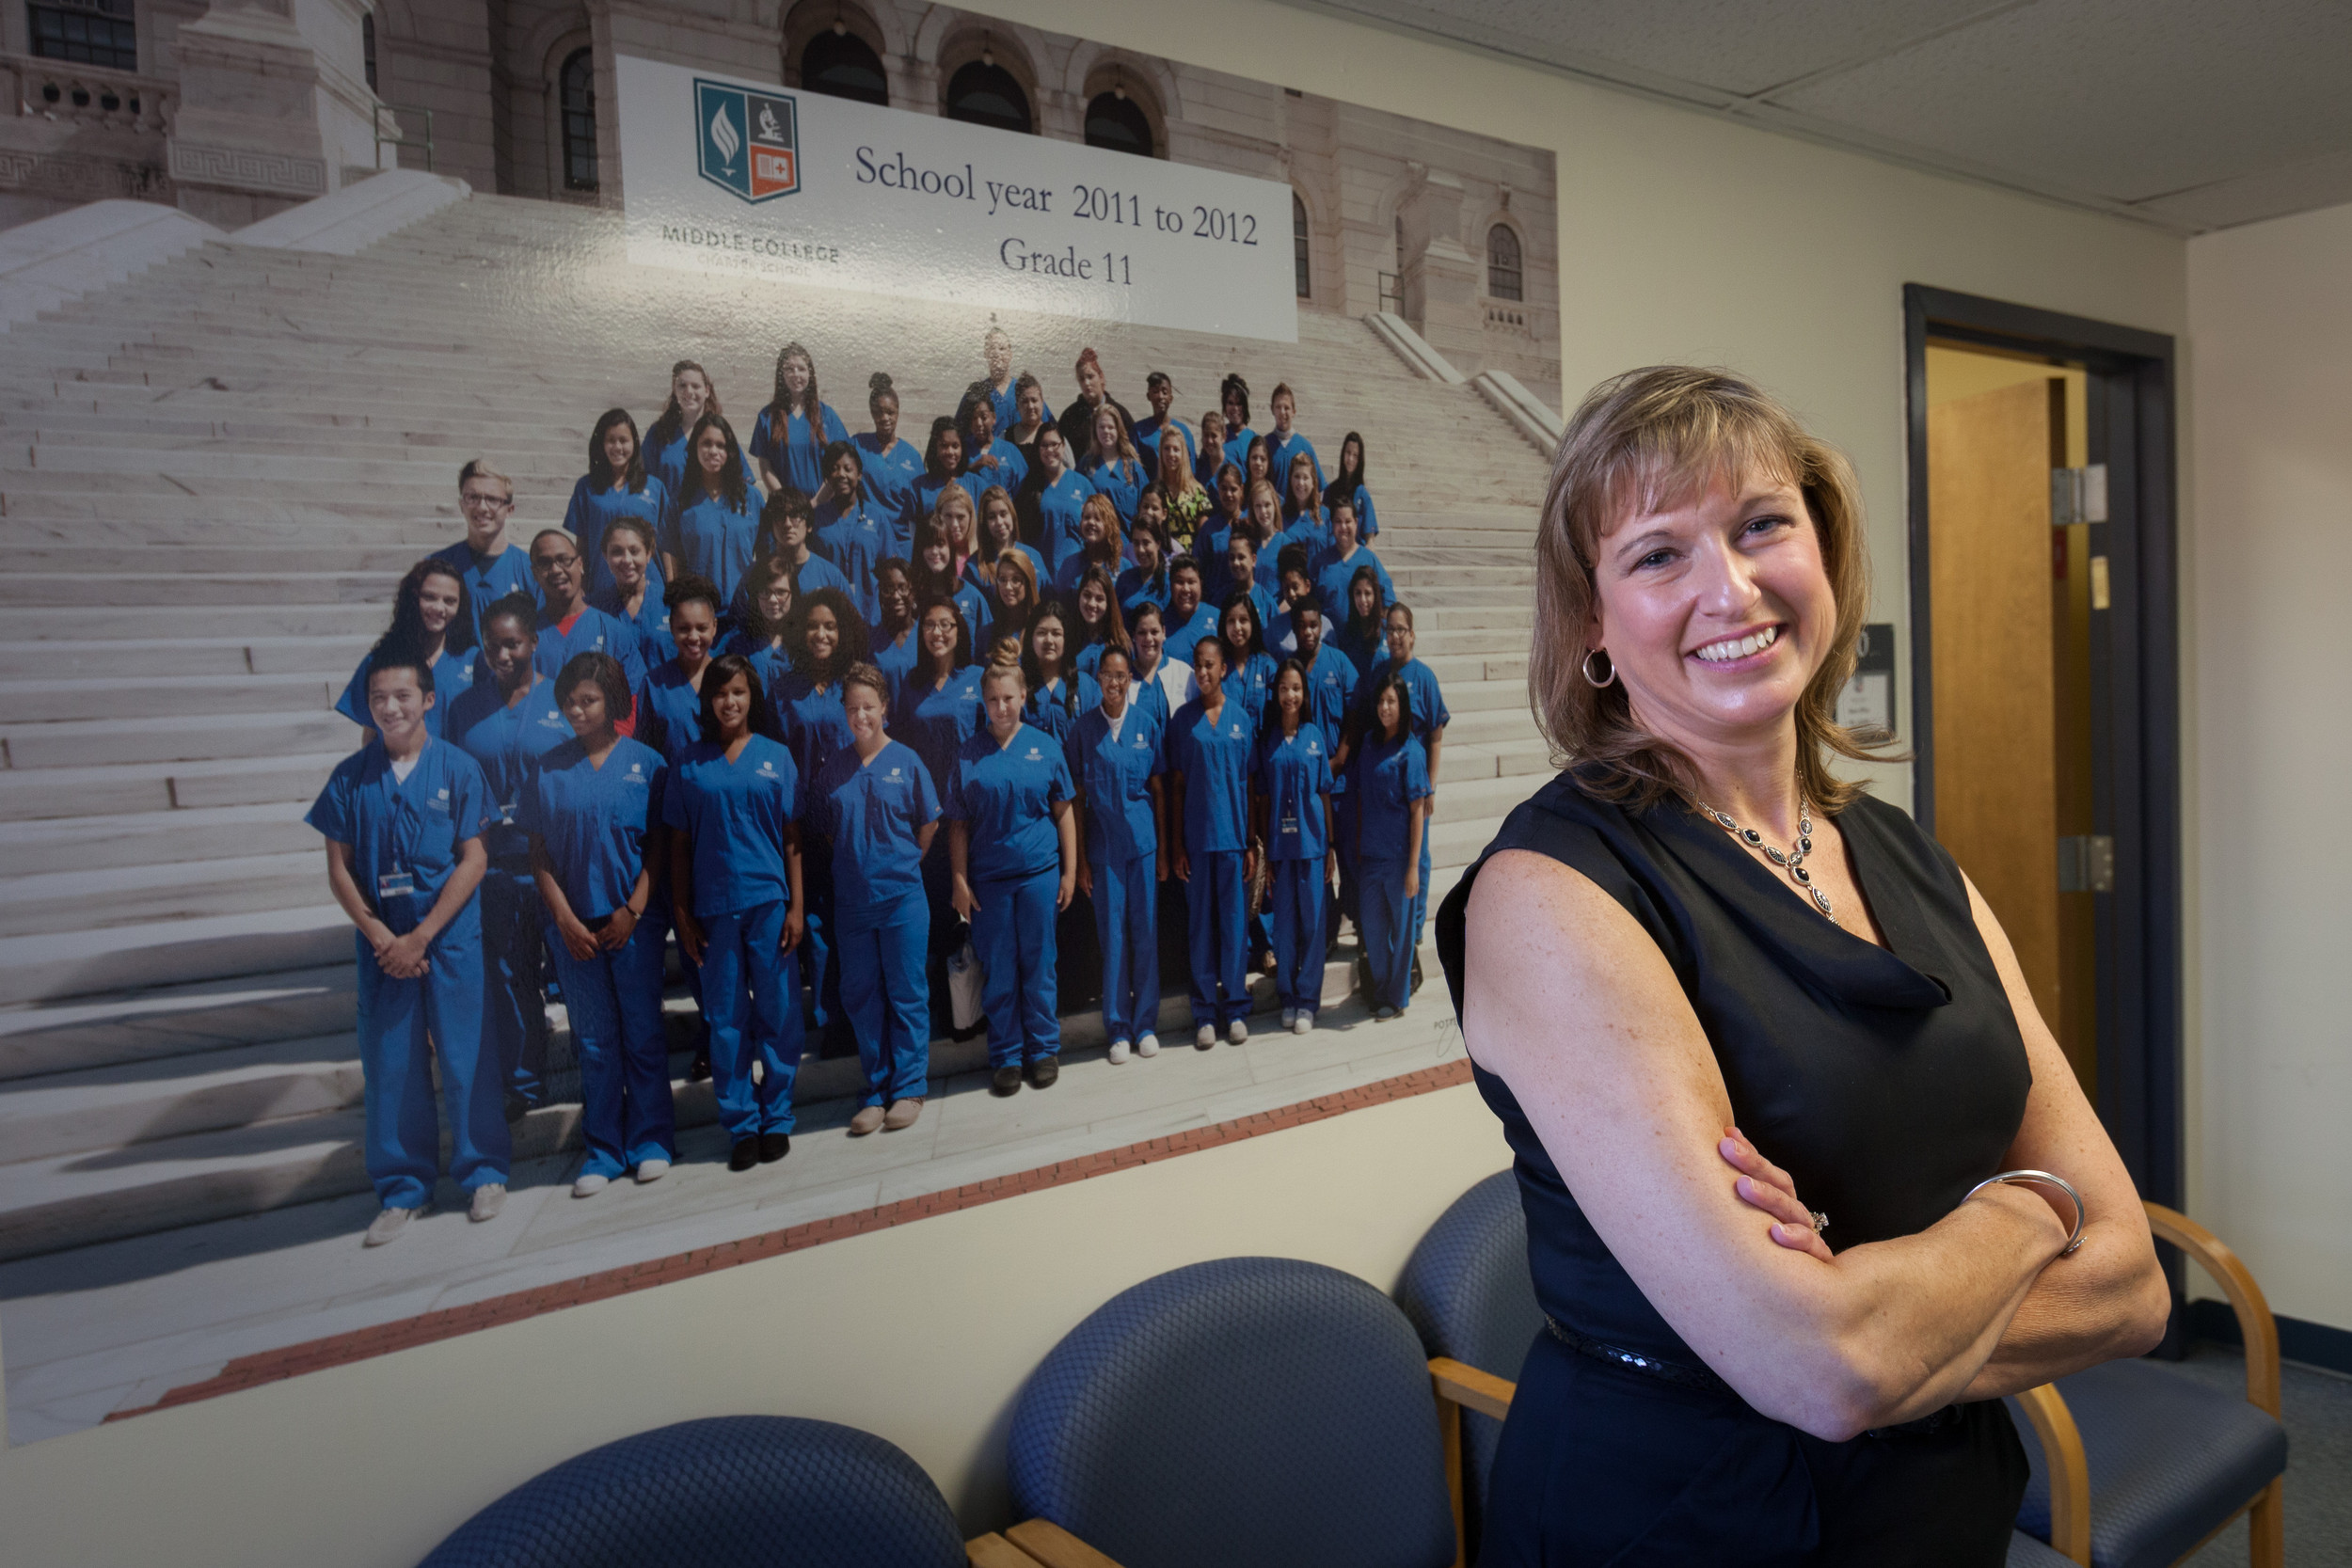 Pamela McCue, CEO of the R.I. Nurses Institute Middle College Charter School, in front of a poster of the first entering class of students from 2011.